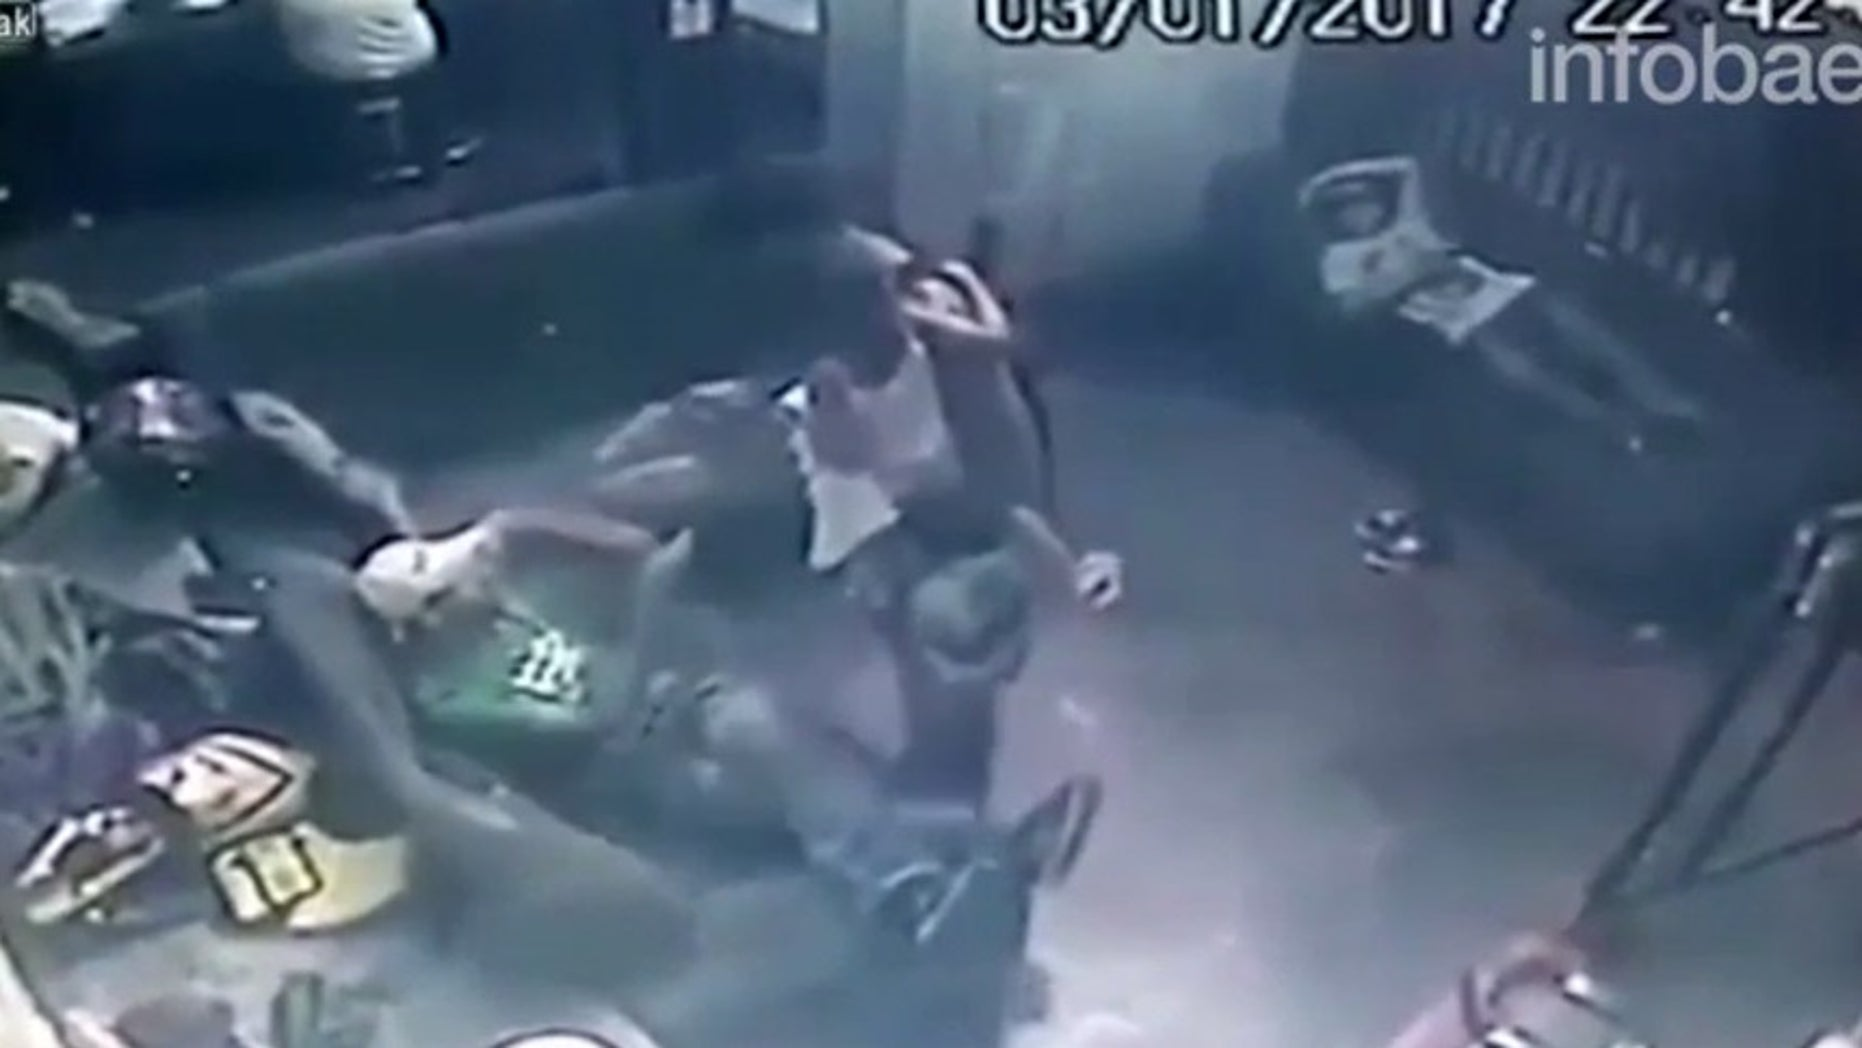 Still shot from the 20-second video caught by a surveillance camera in Minas Gerais, Brazil.